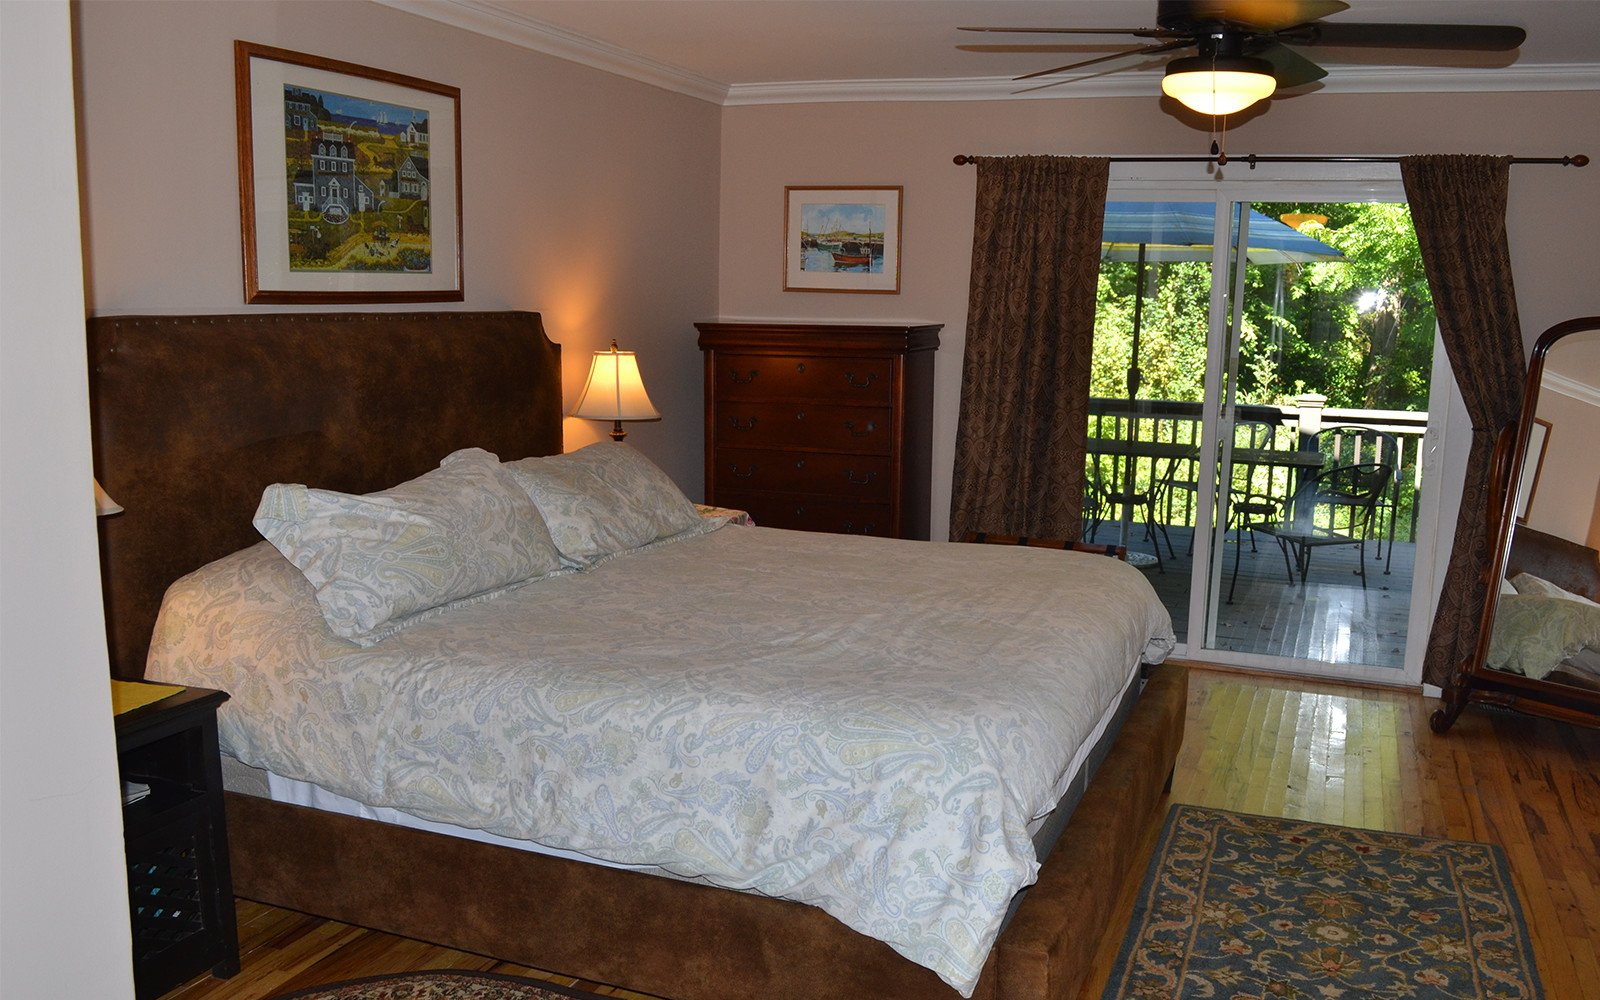 Master-bedroom-King-bed-Franklin-Street-house